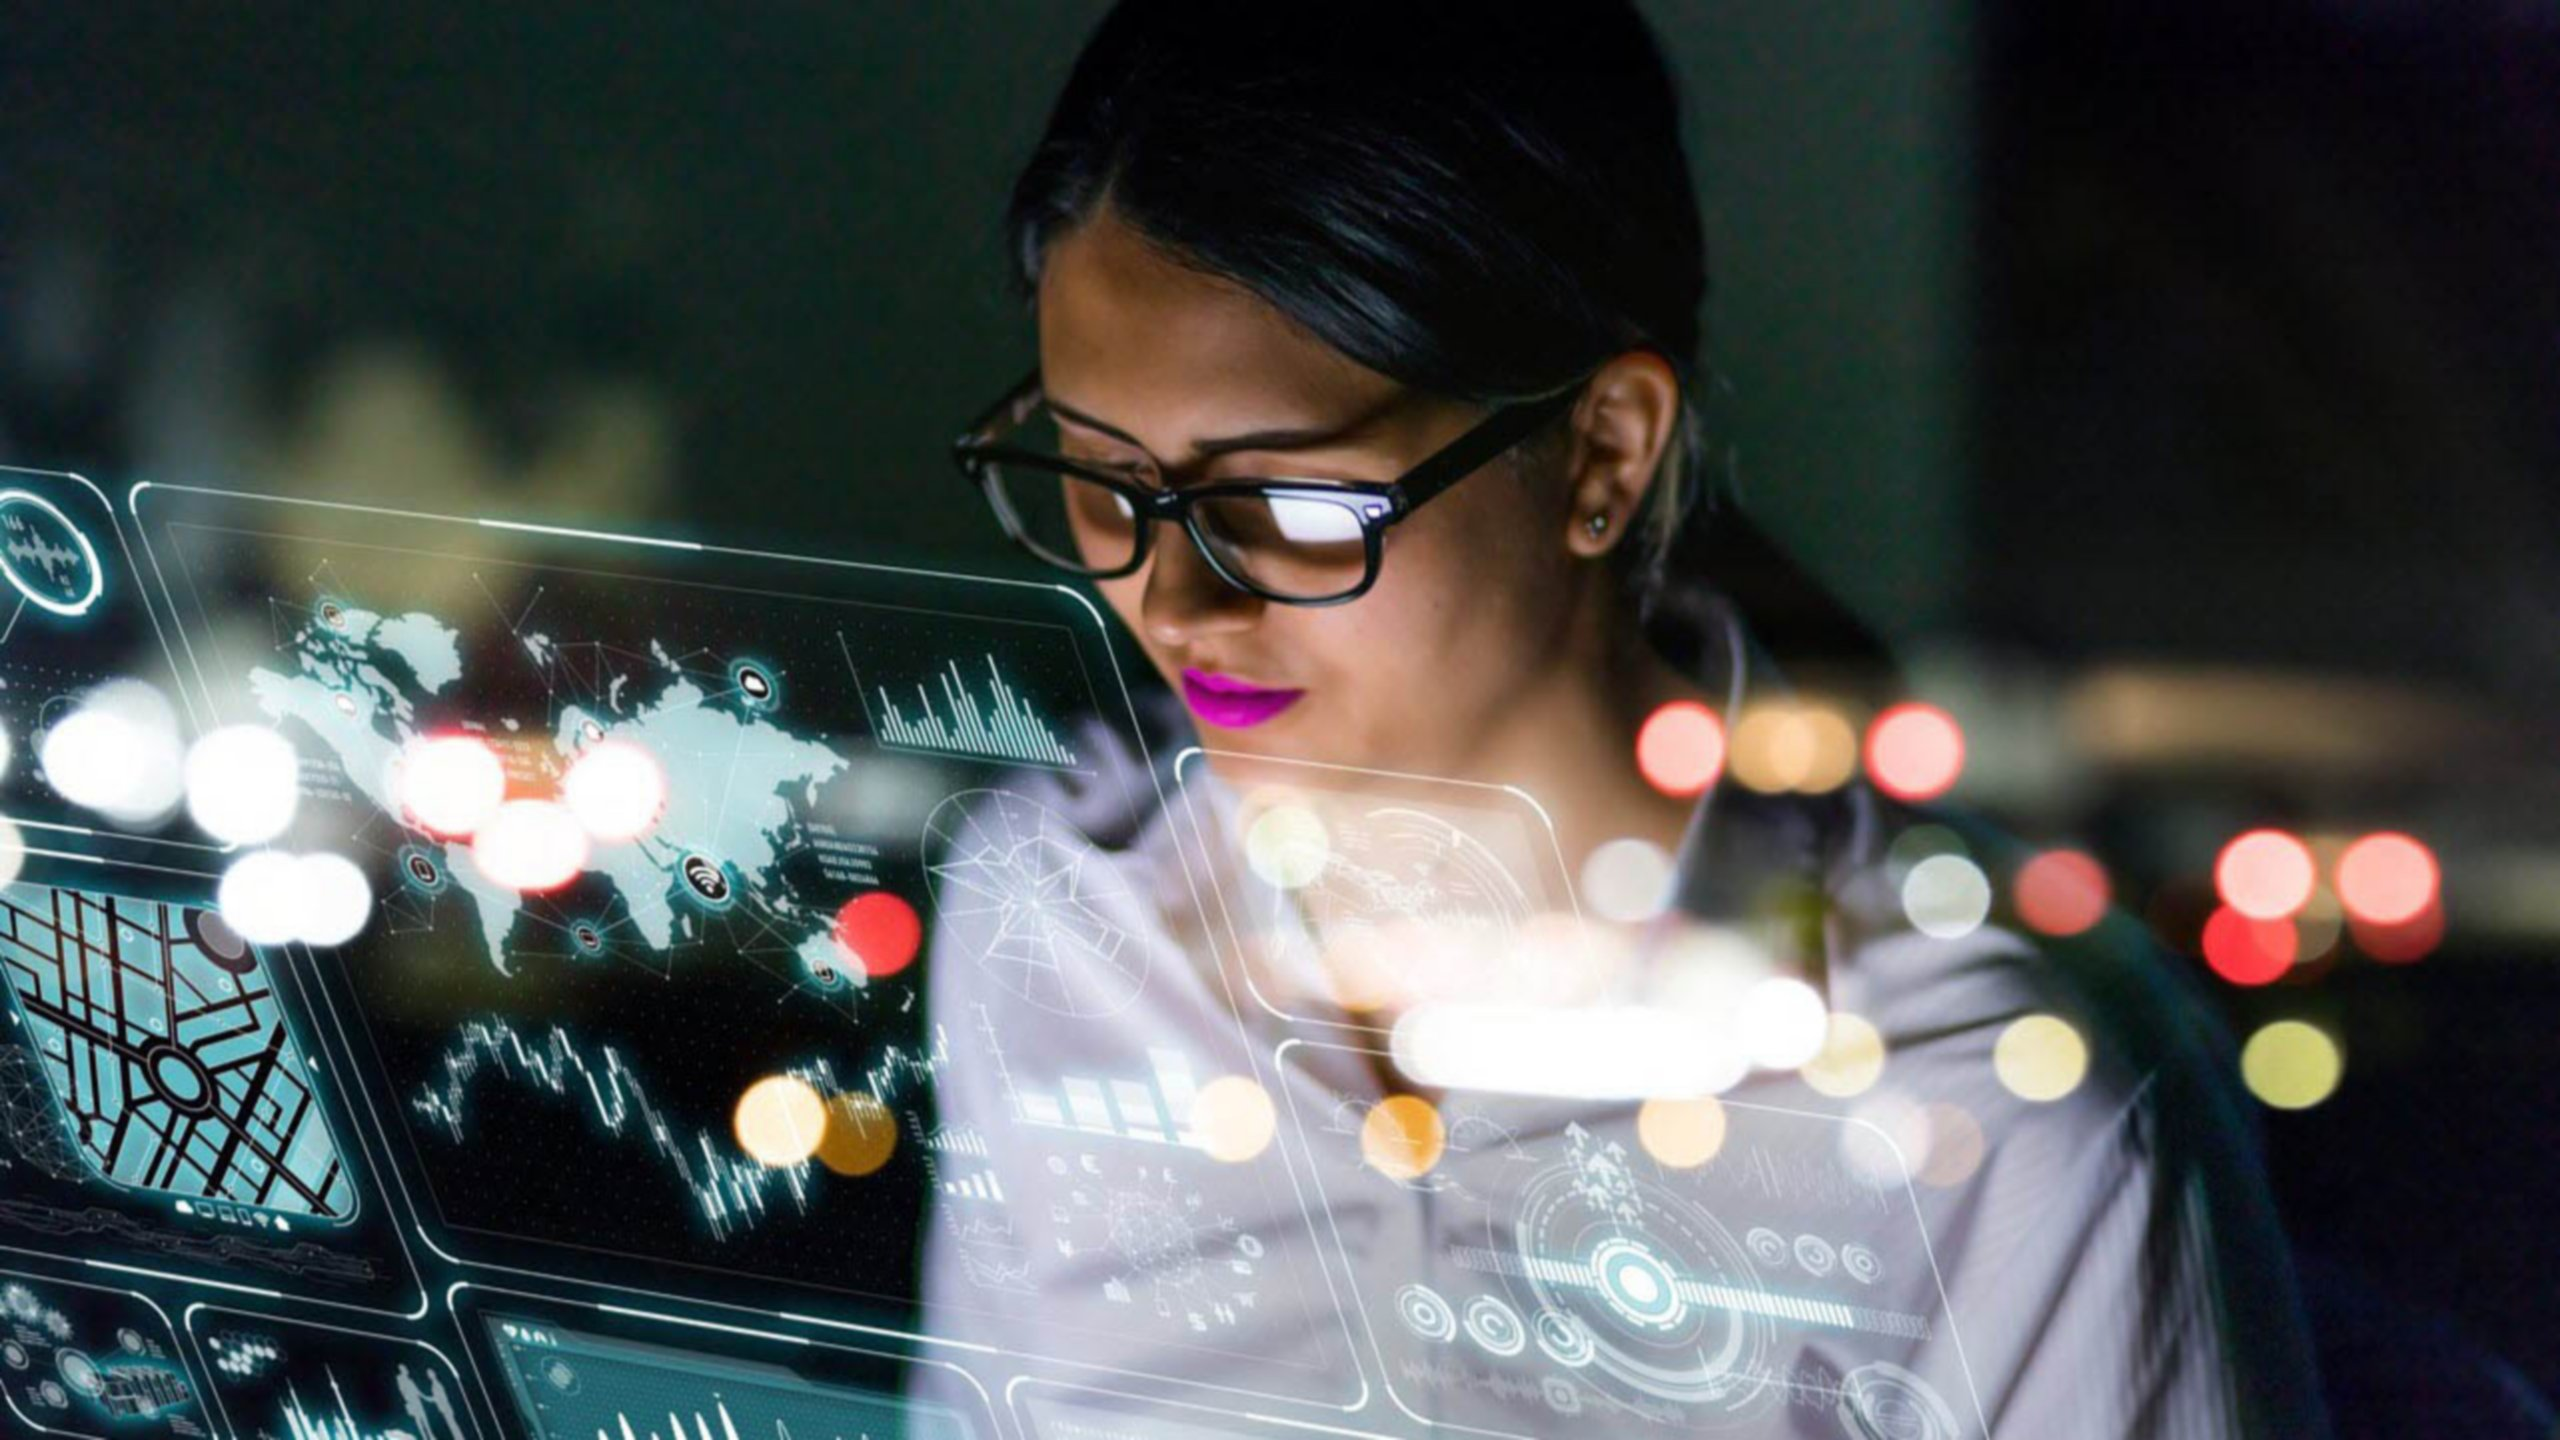 Female engineer wearing glasses at her desk viewing software on her laptop